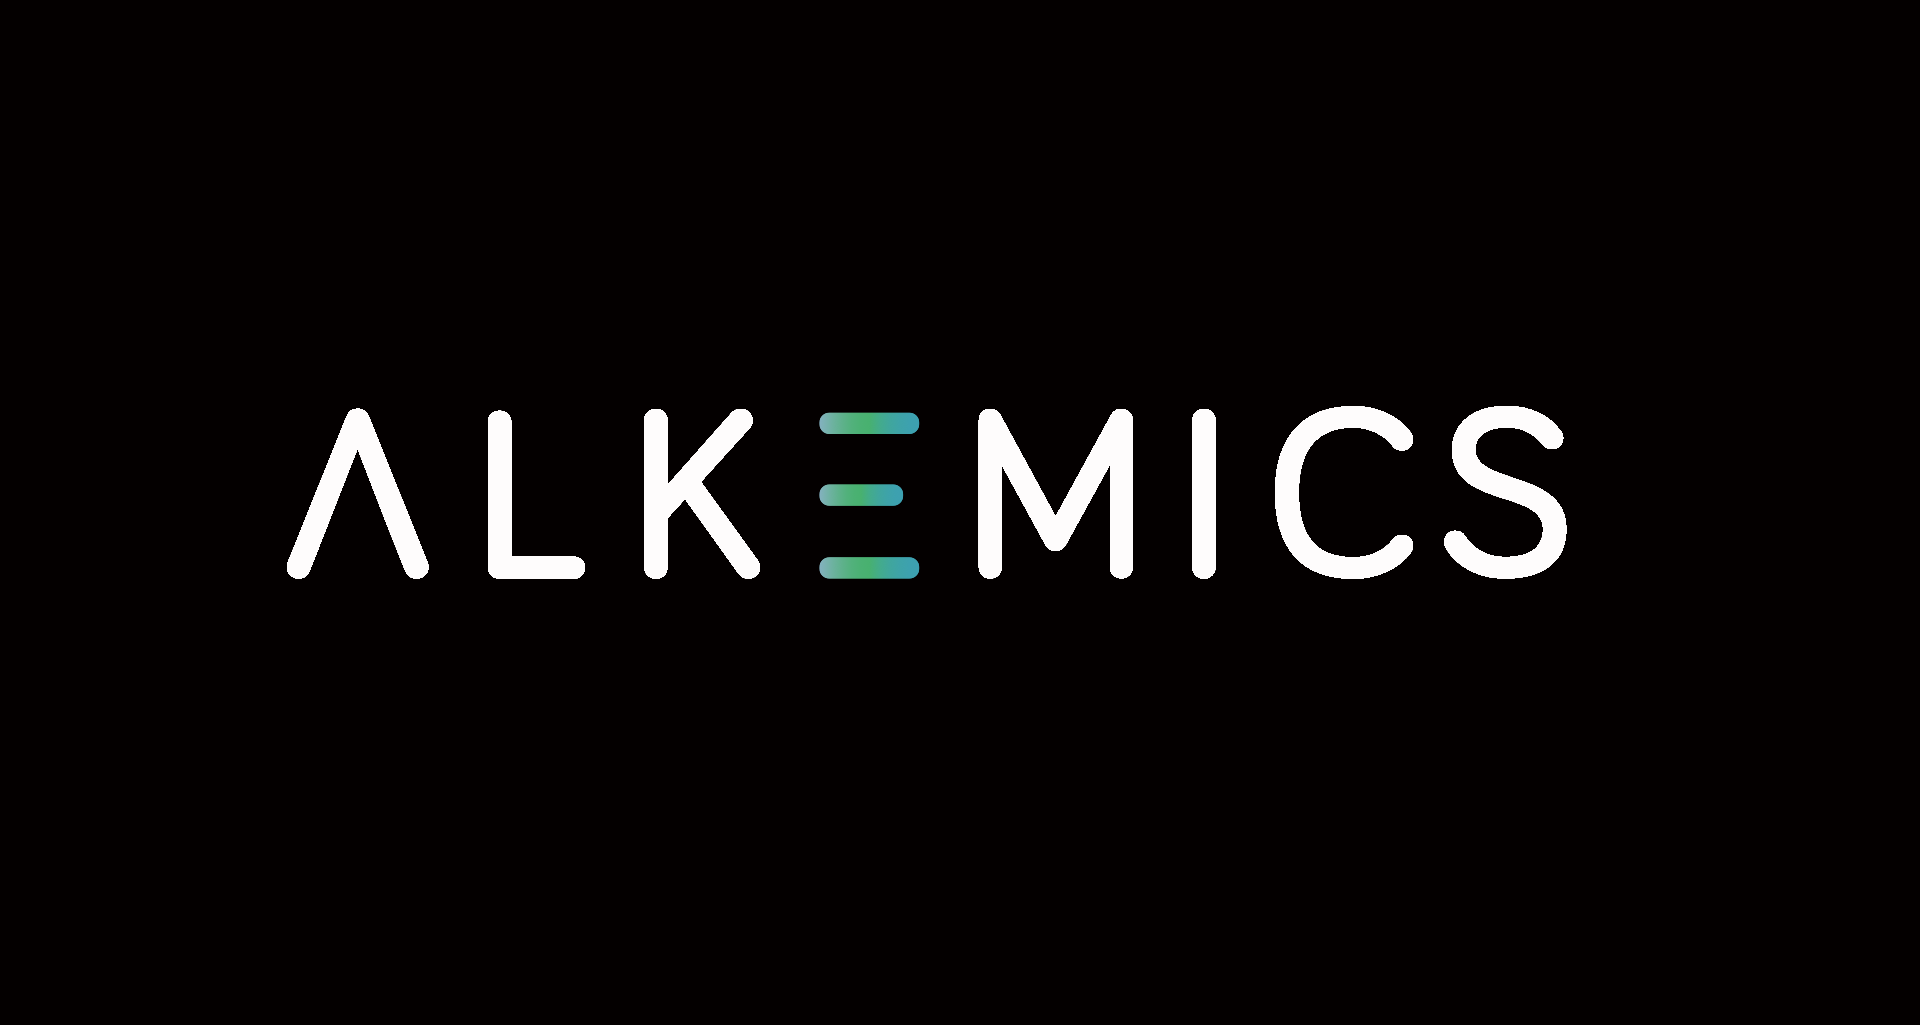 Alkemics